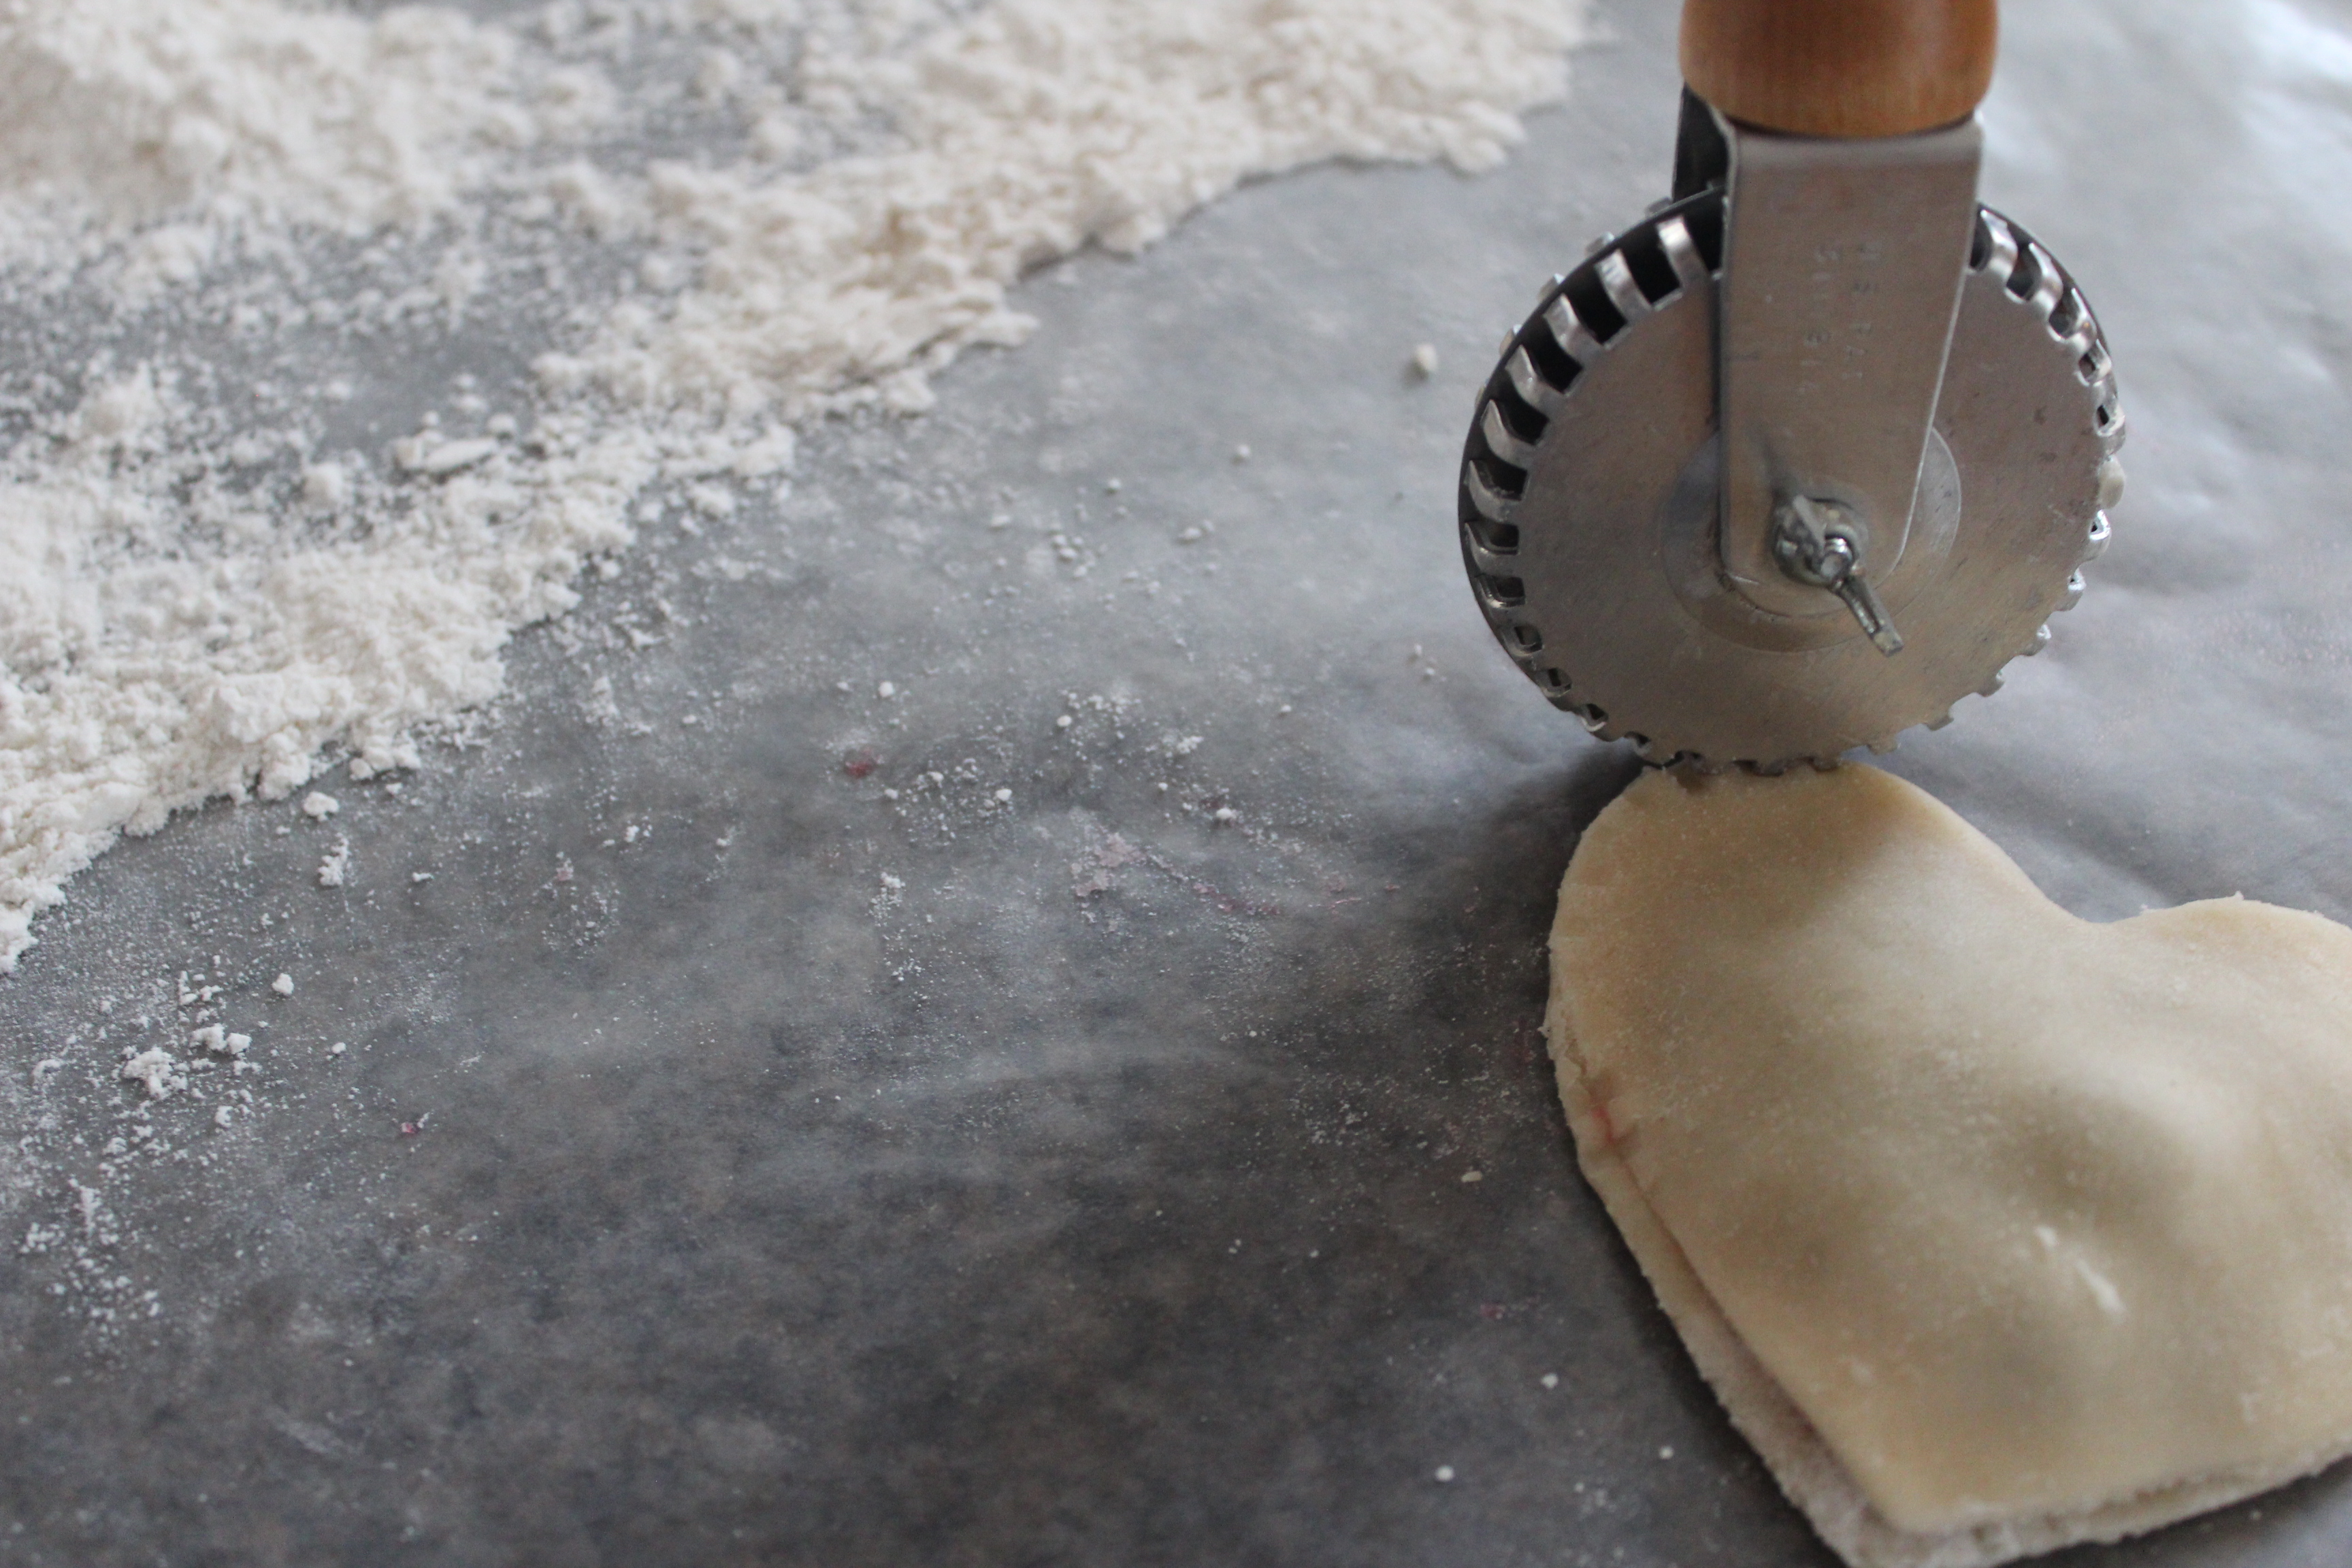 Making Heart Shaped Pies